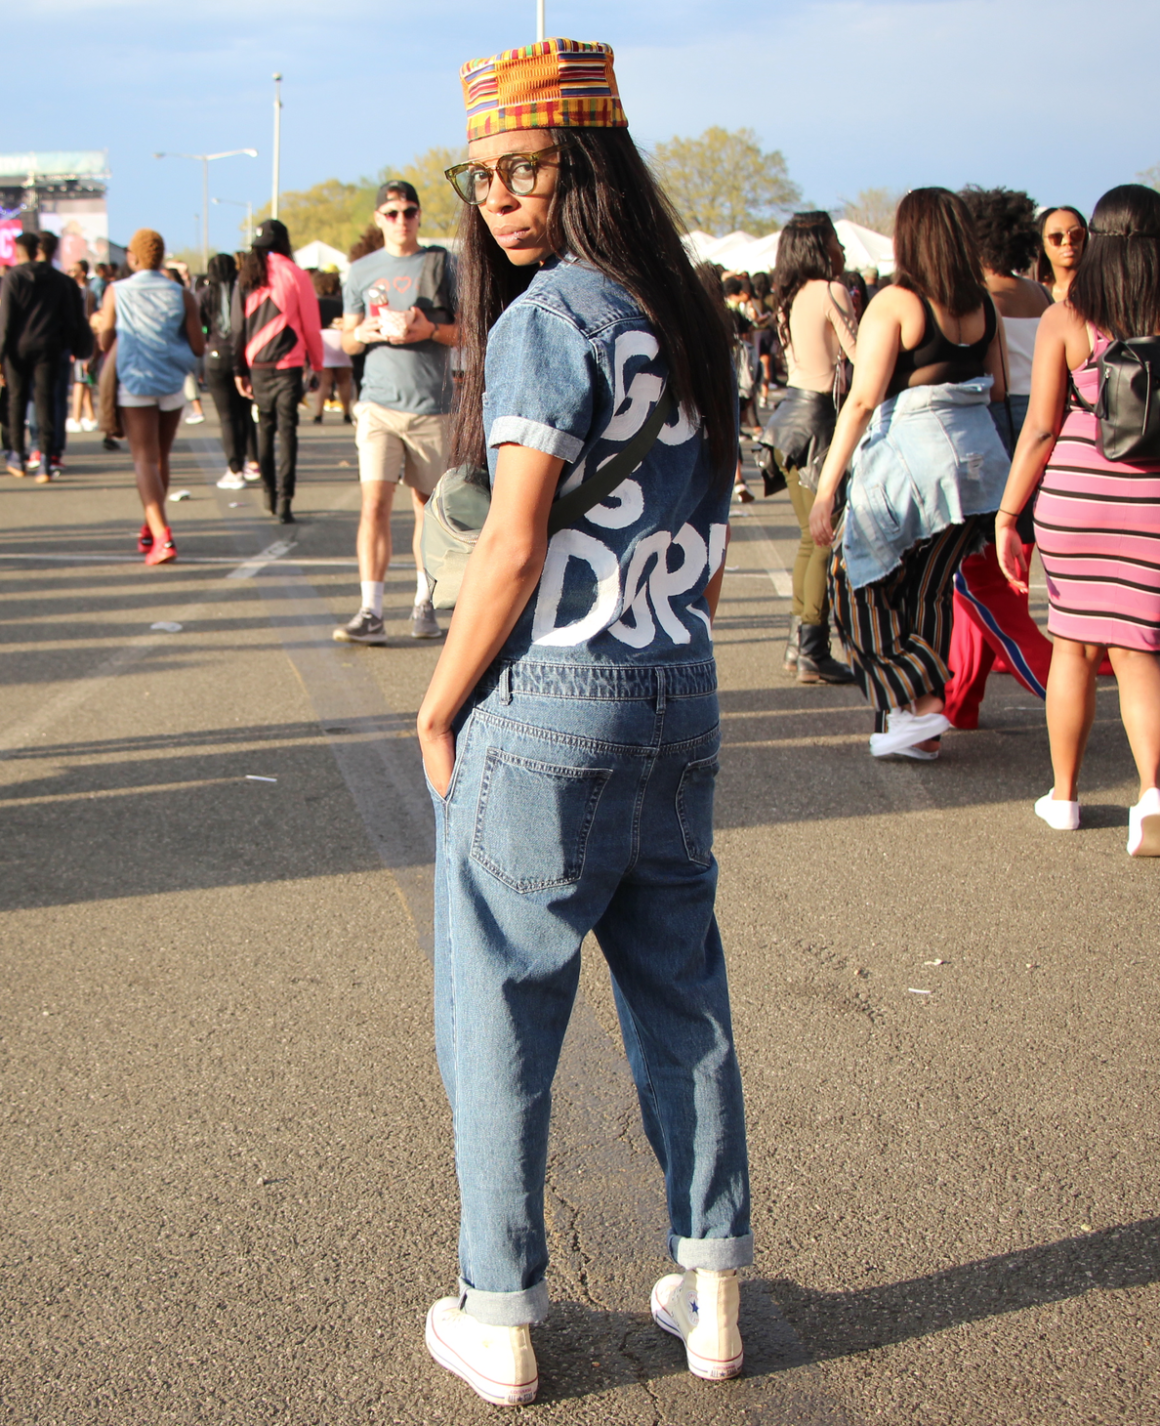 10f61d56e57 Real Street Style  Washington D.C. s Broccoli City Festival 2018 - Fashion  Bomb Daily Style Magazine  Celebrity Fashion